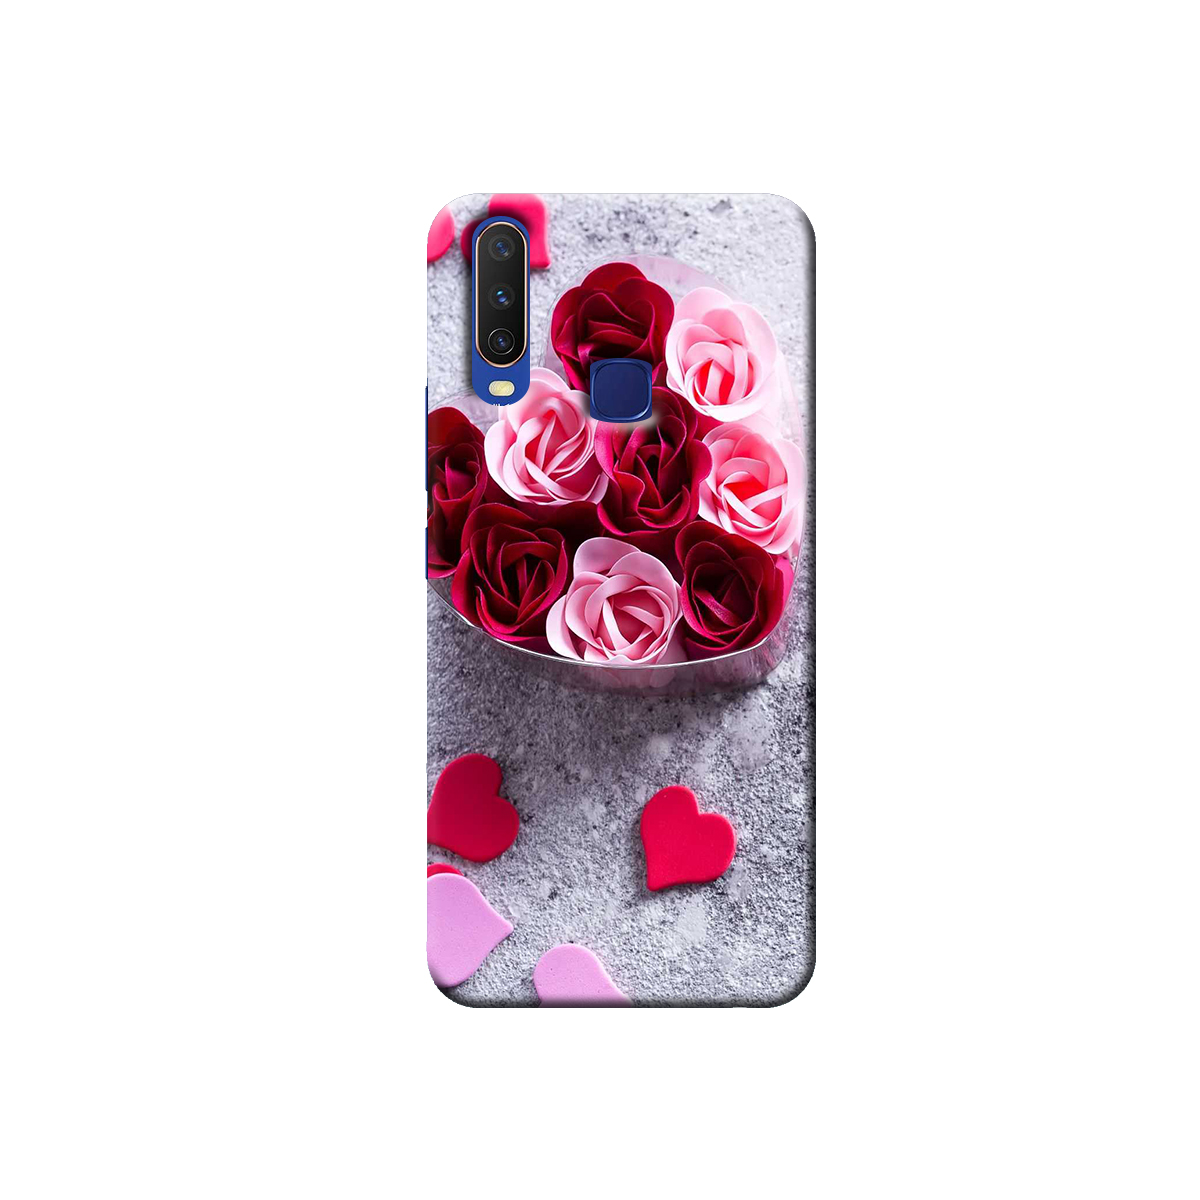 Vivo Y12 / Y15 / Y17 Back cover (Rose)